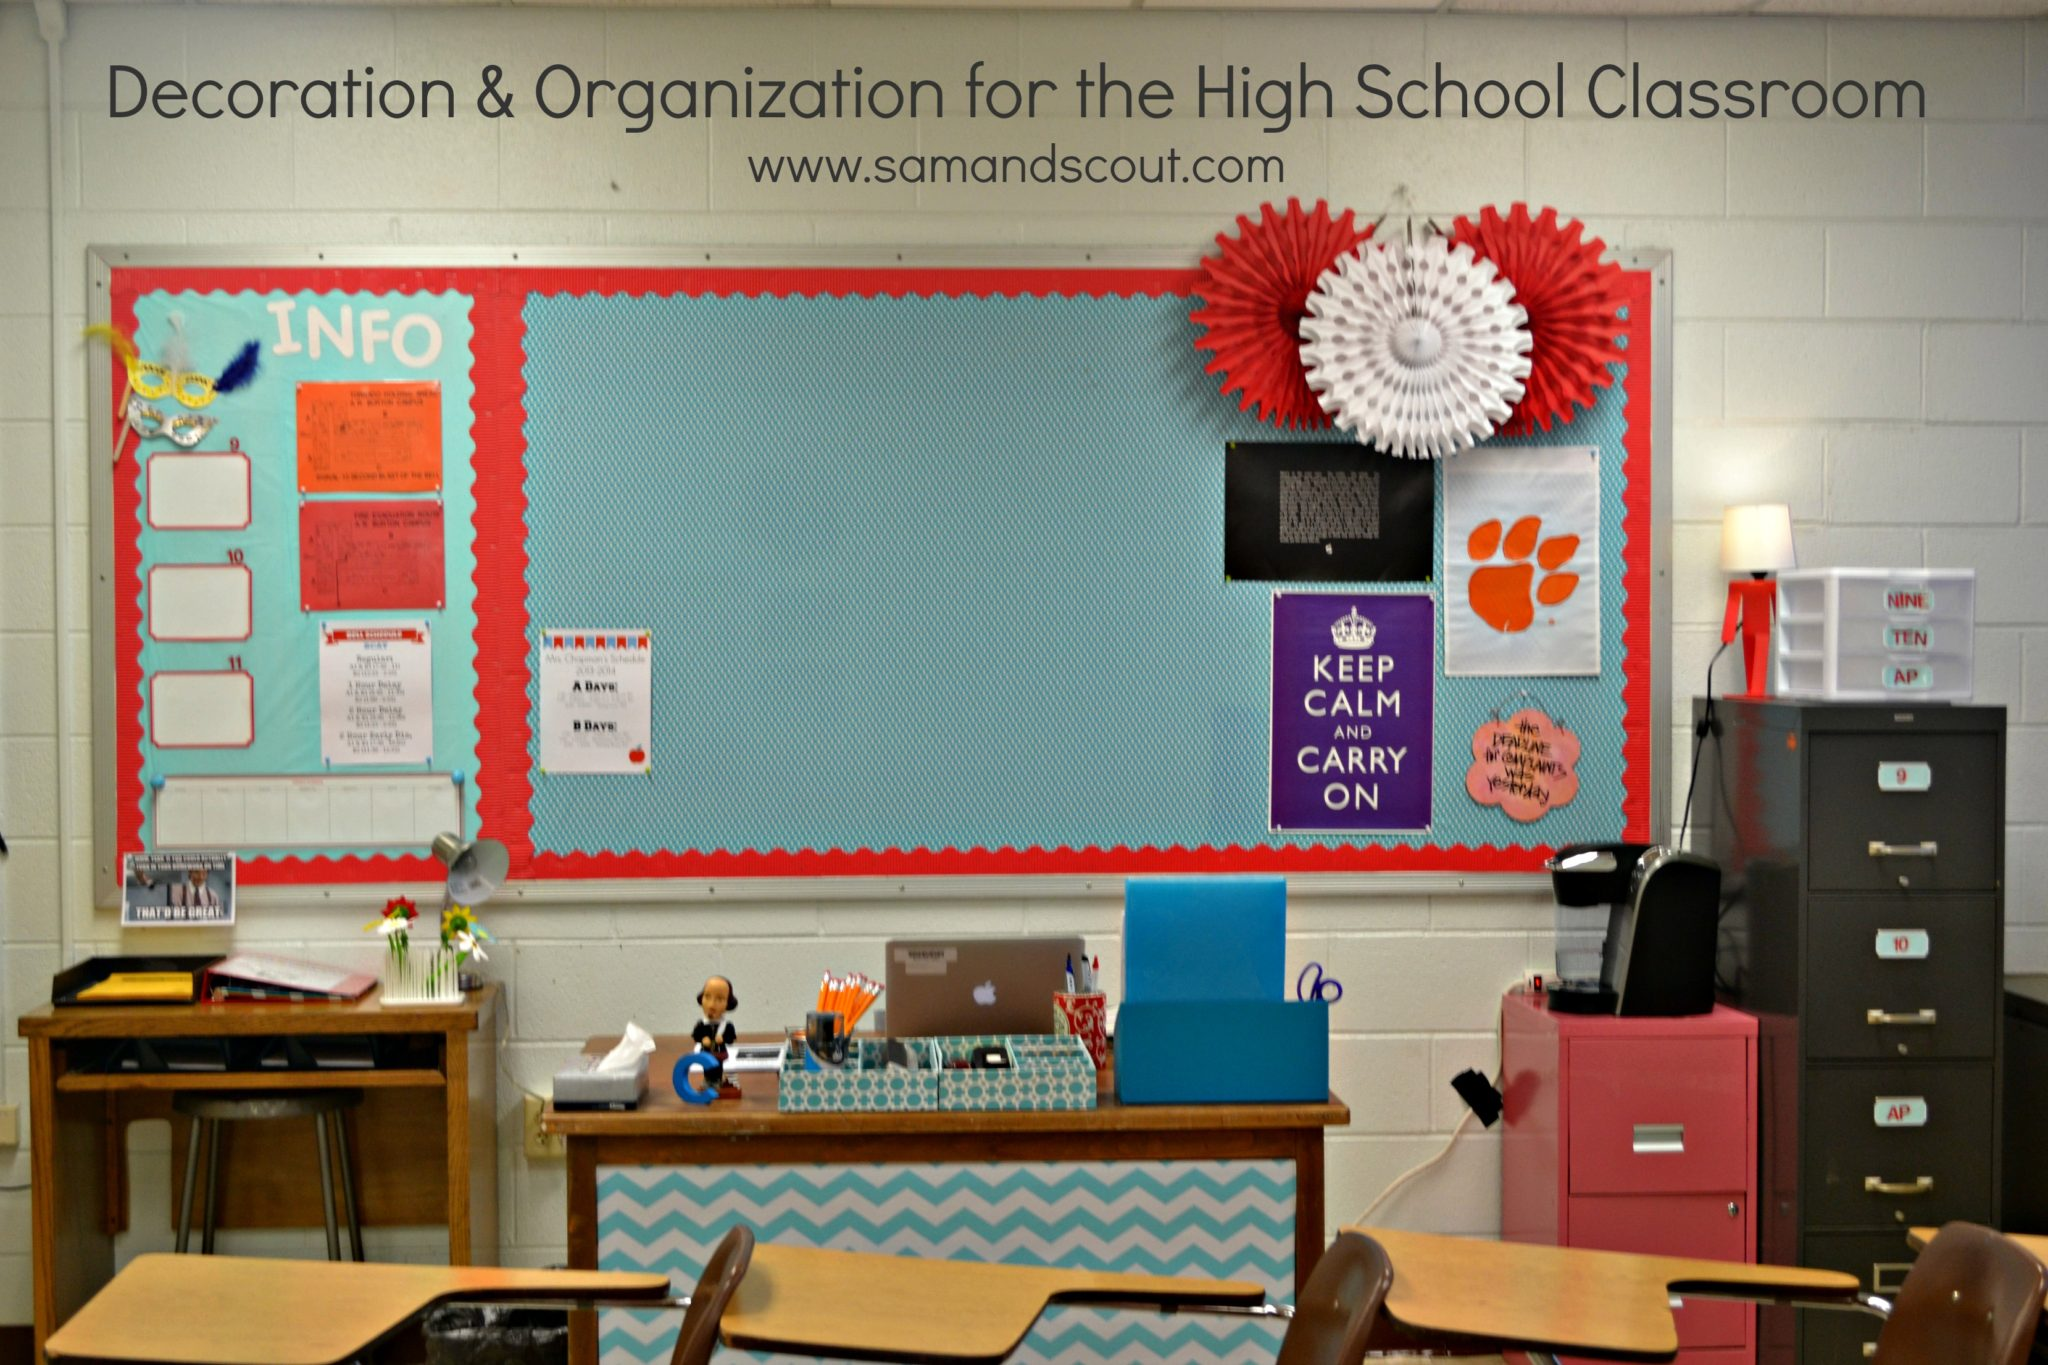 Cute Classroom Decoration ~ Decoration organization for the high school classroom